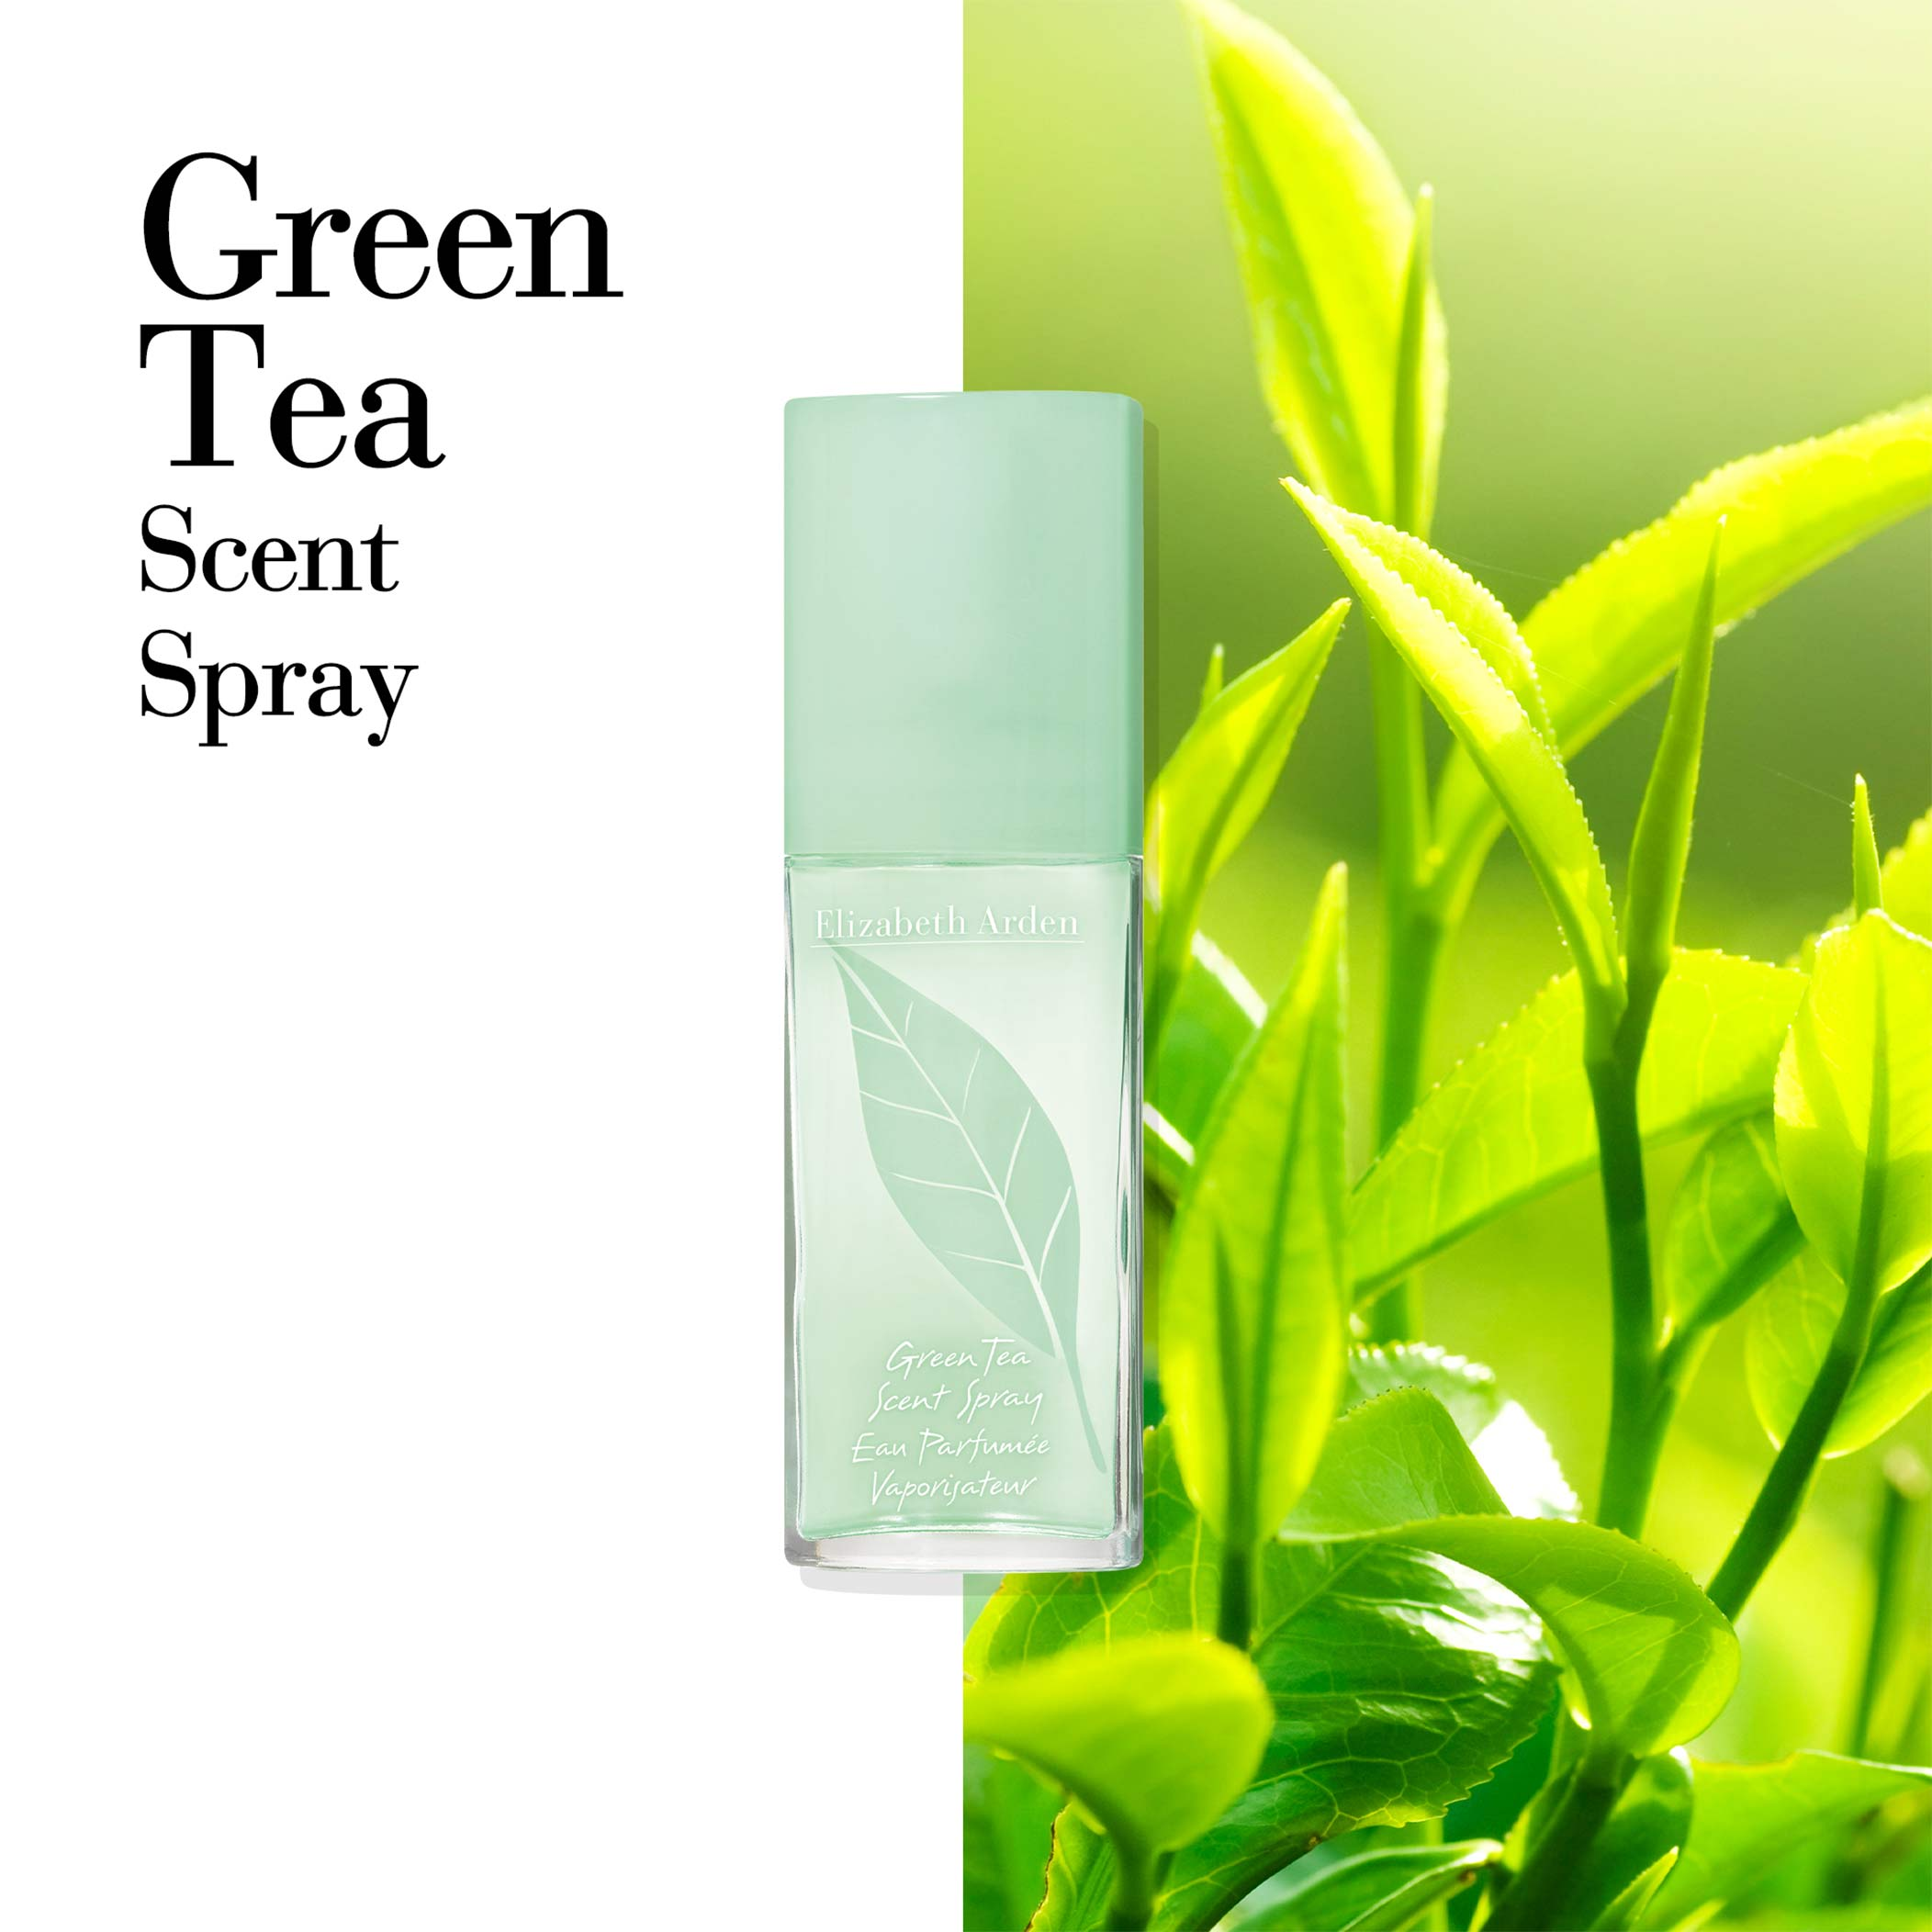 Green Tea Scent Spray